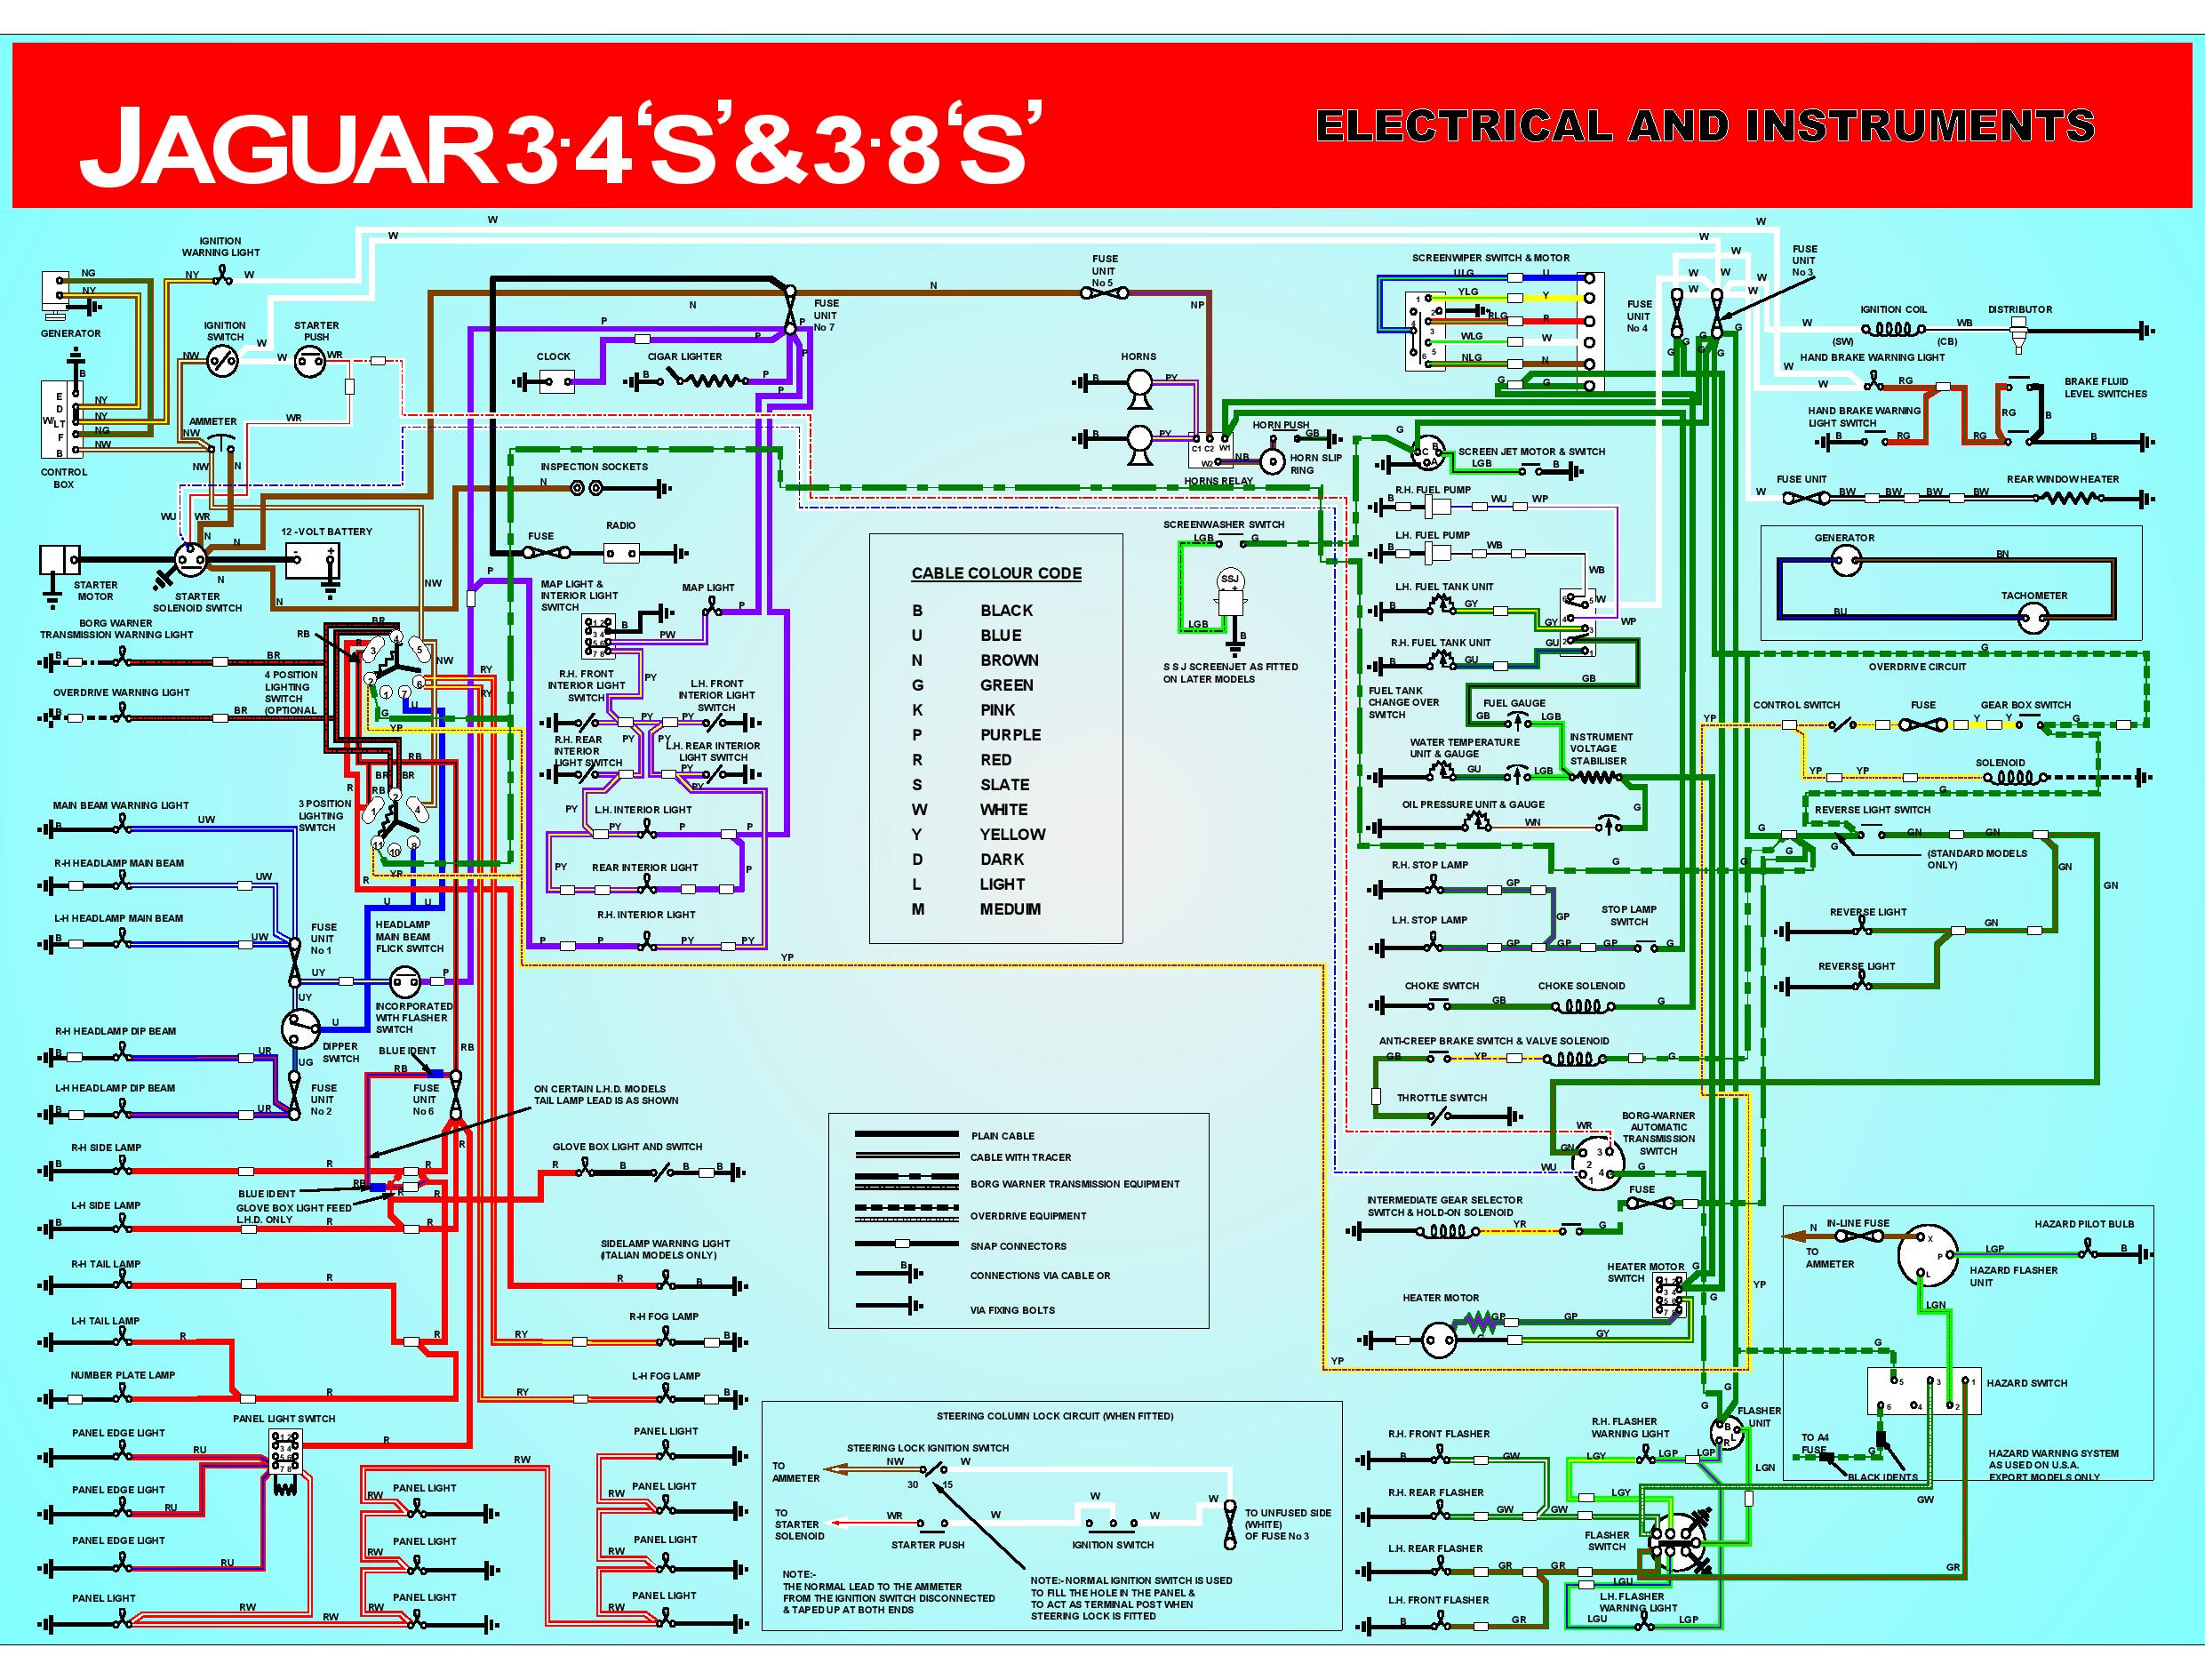 Jaguar Mk2 Wiring Diagram Download Largest Database For Guitar 1967 420 Auto Electrical U2022 Rh 6weeks Co Uk Xj6 1995